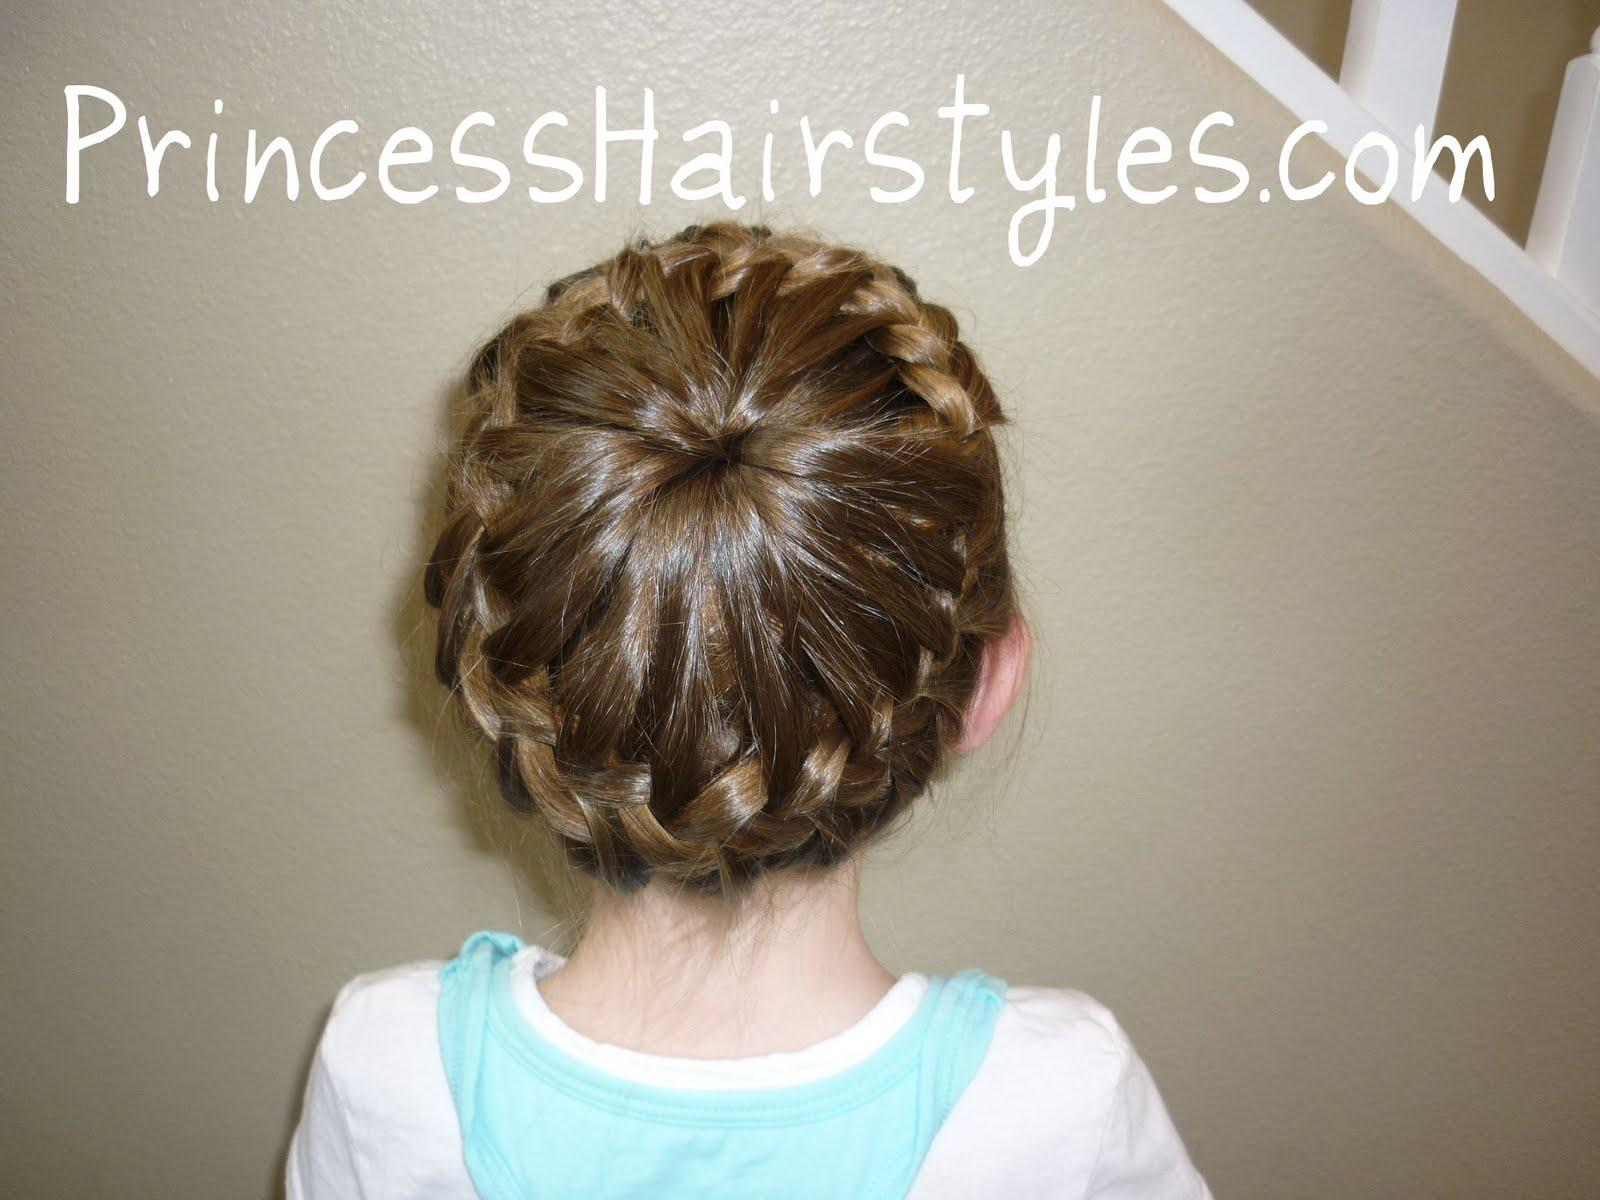 You Could Double Braids Make French Braid Pigtail Buns